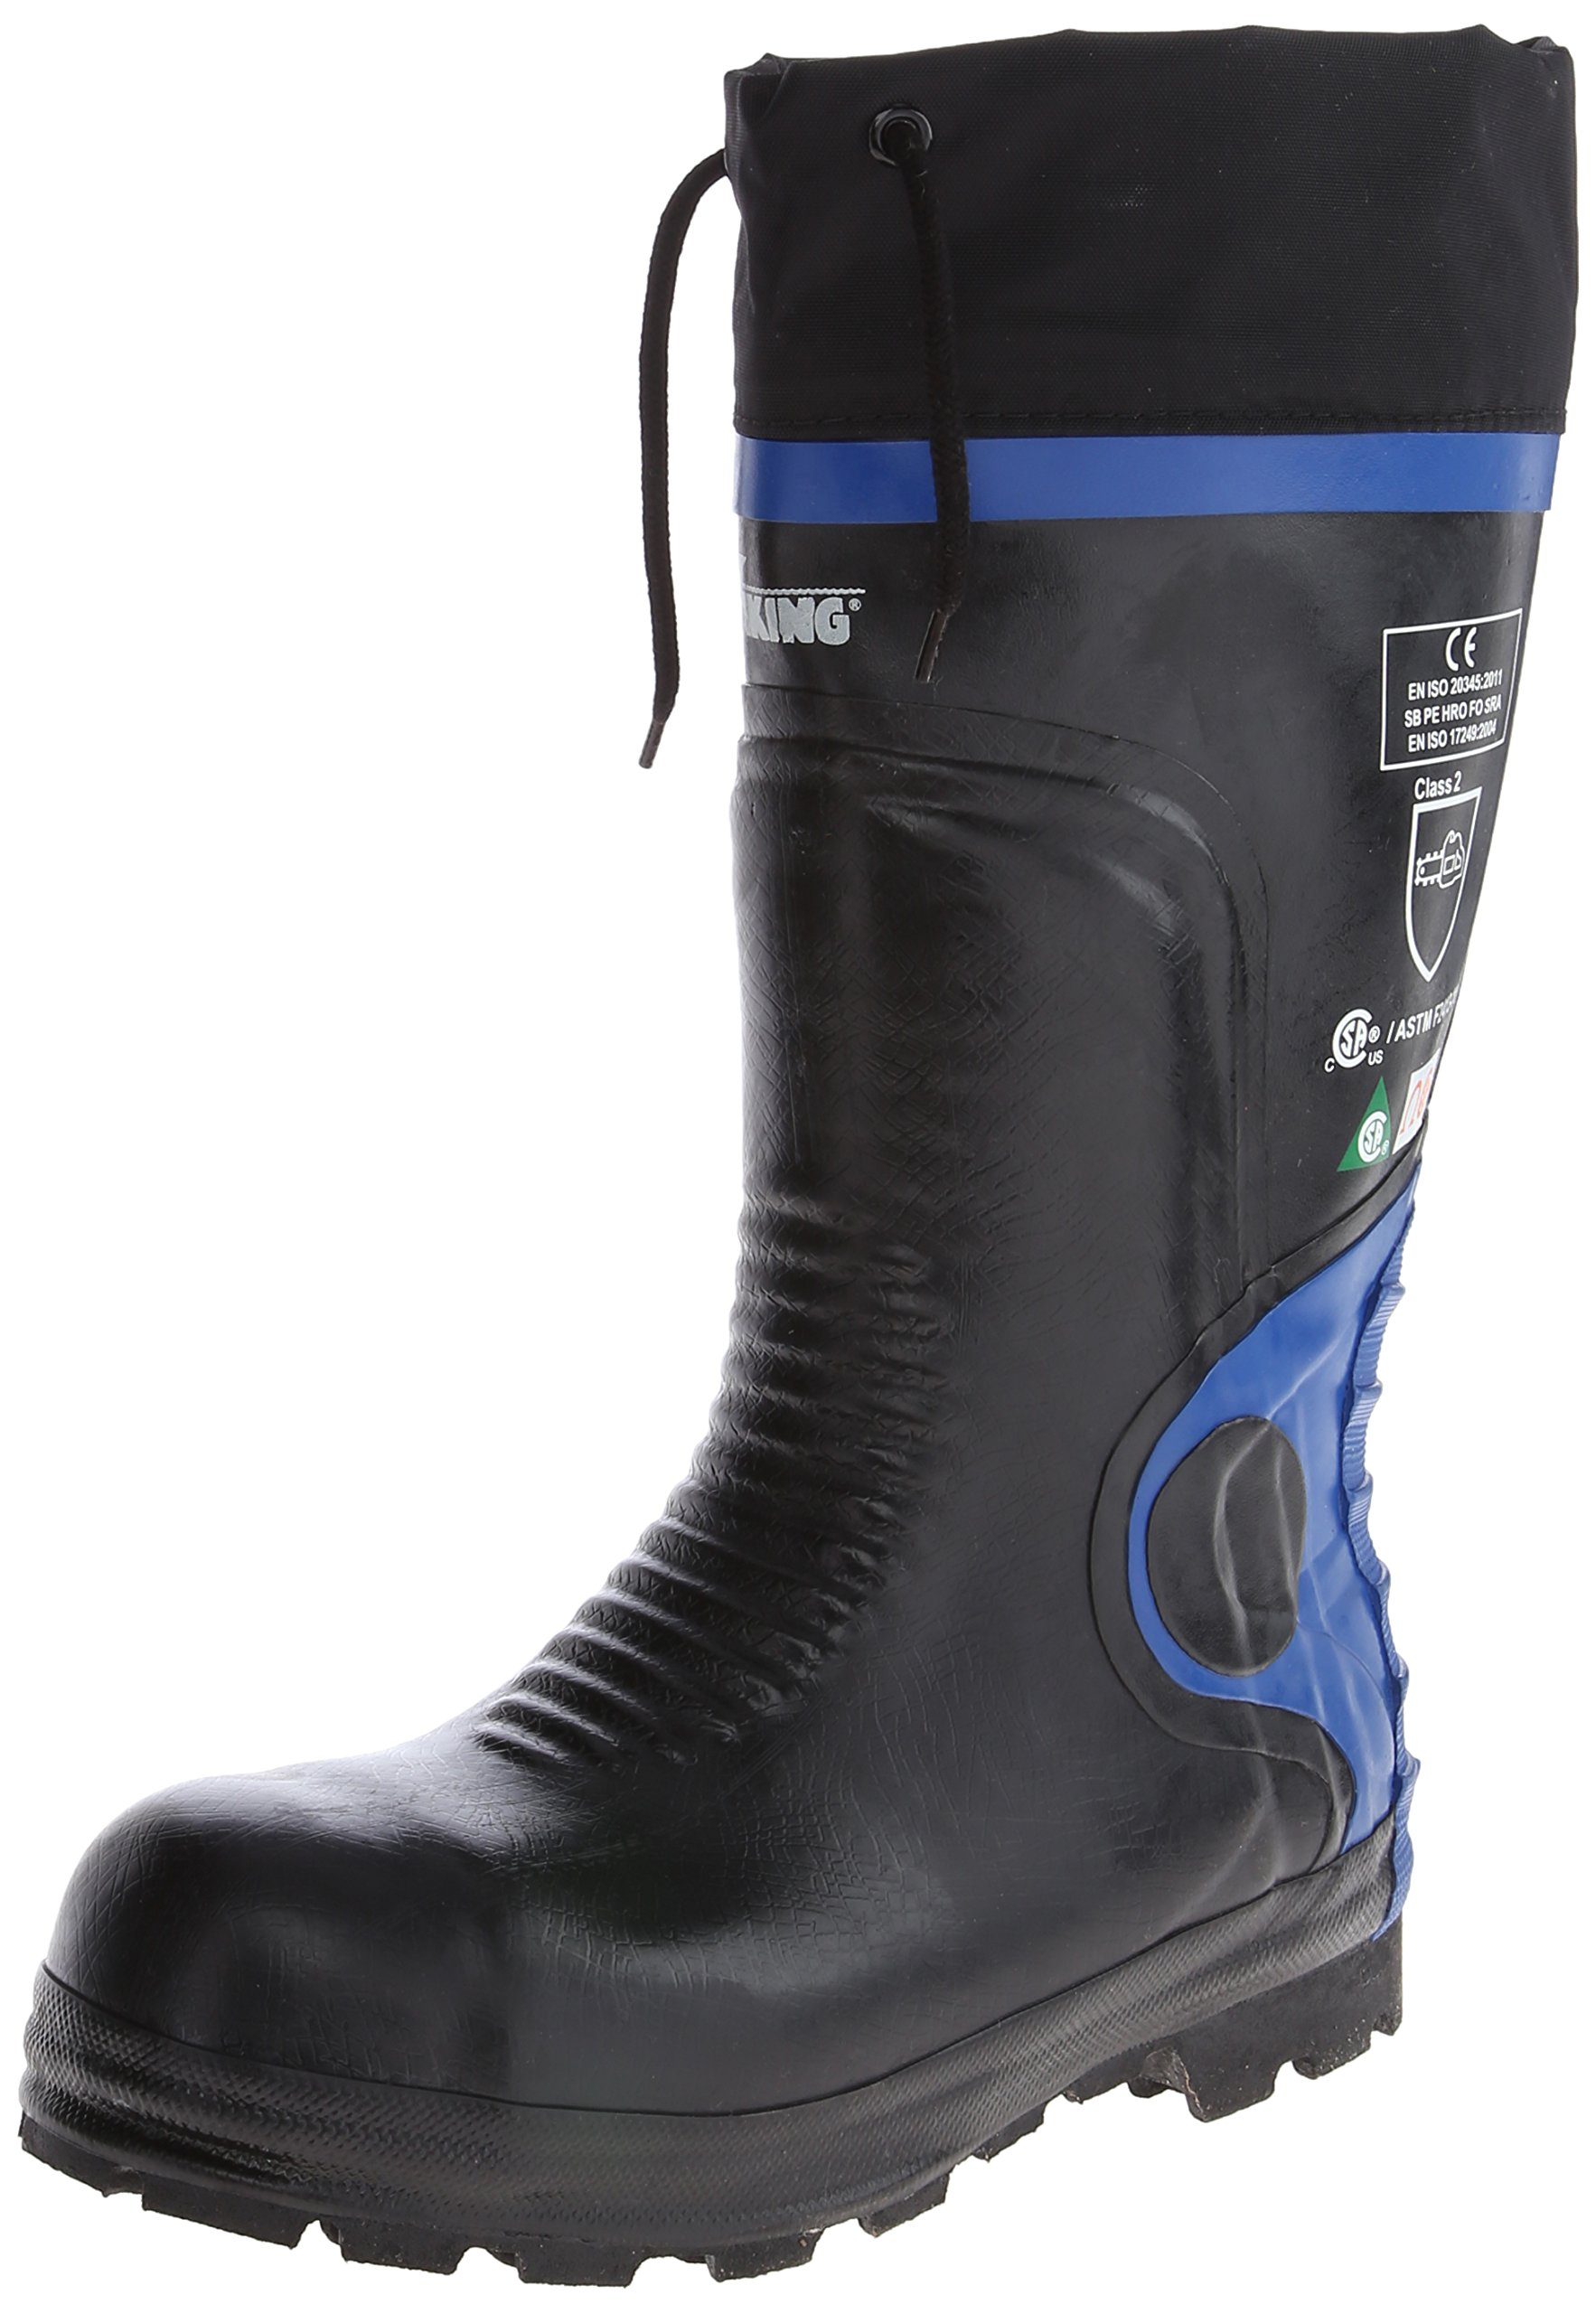 Viking Footwear Ultimate Construction Waterproof Boot,Black/Blue,13 M US